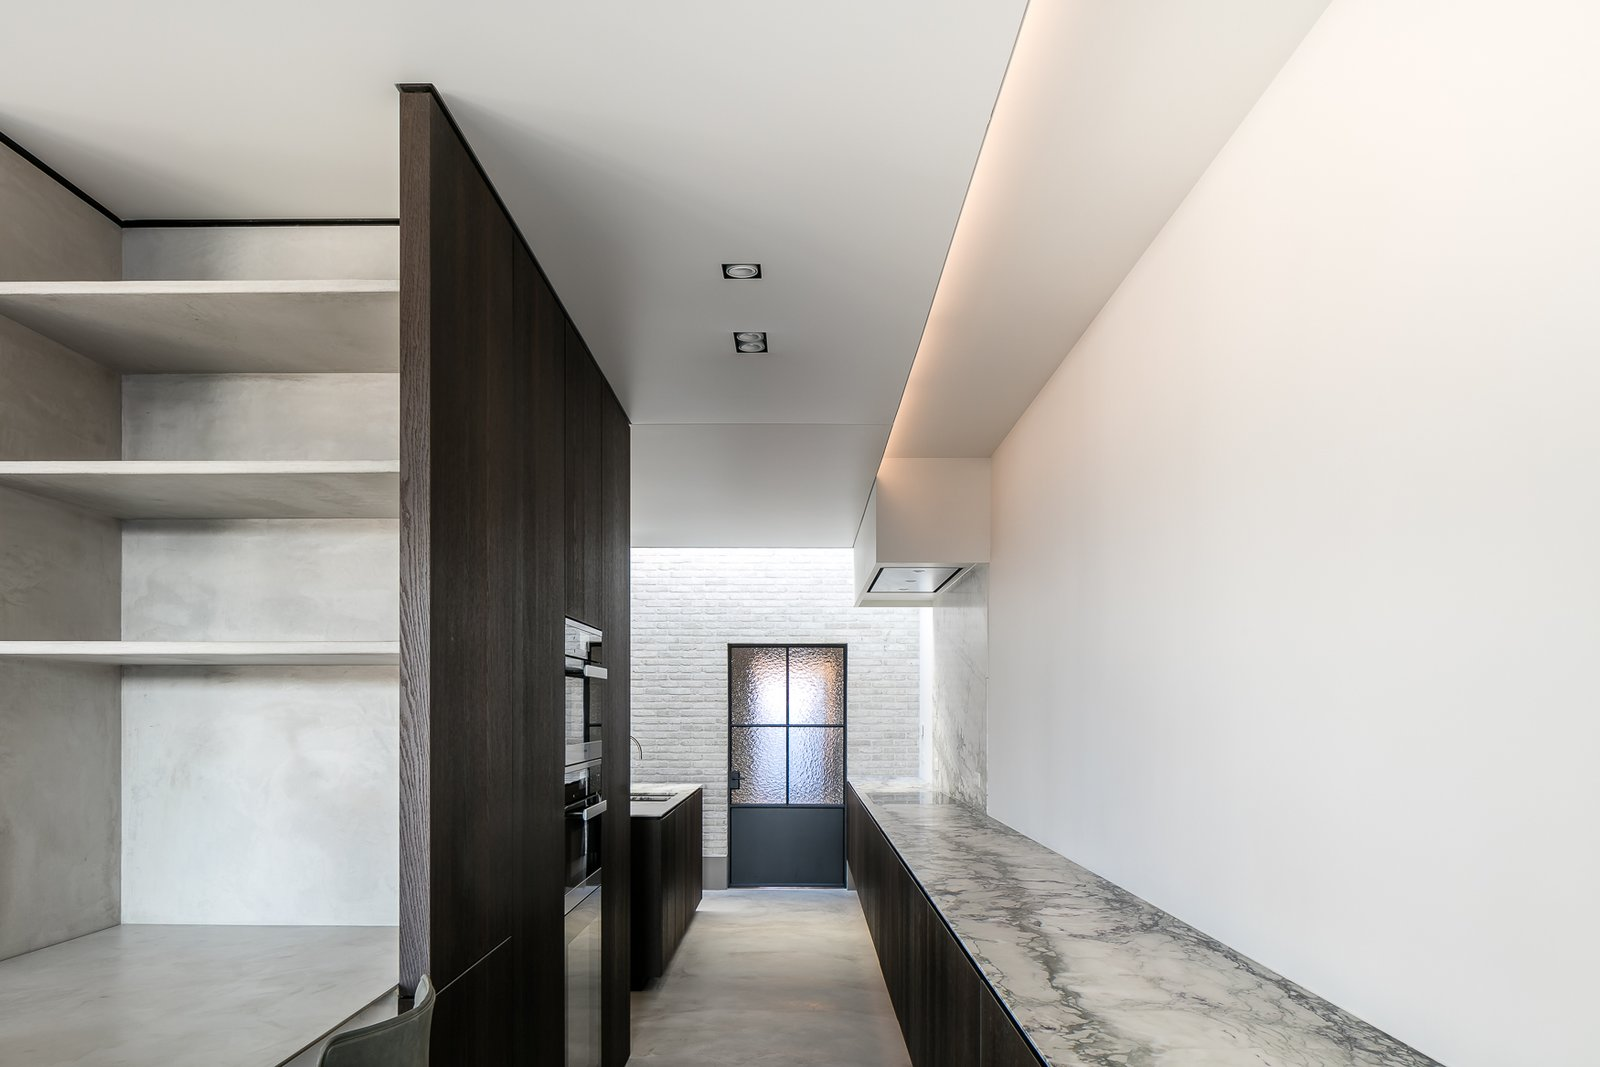 Kitchen, Marble Counter, Light Hardwood Floor, Ceiling Lighting, and Wall Oven  Circu House